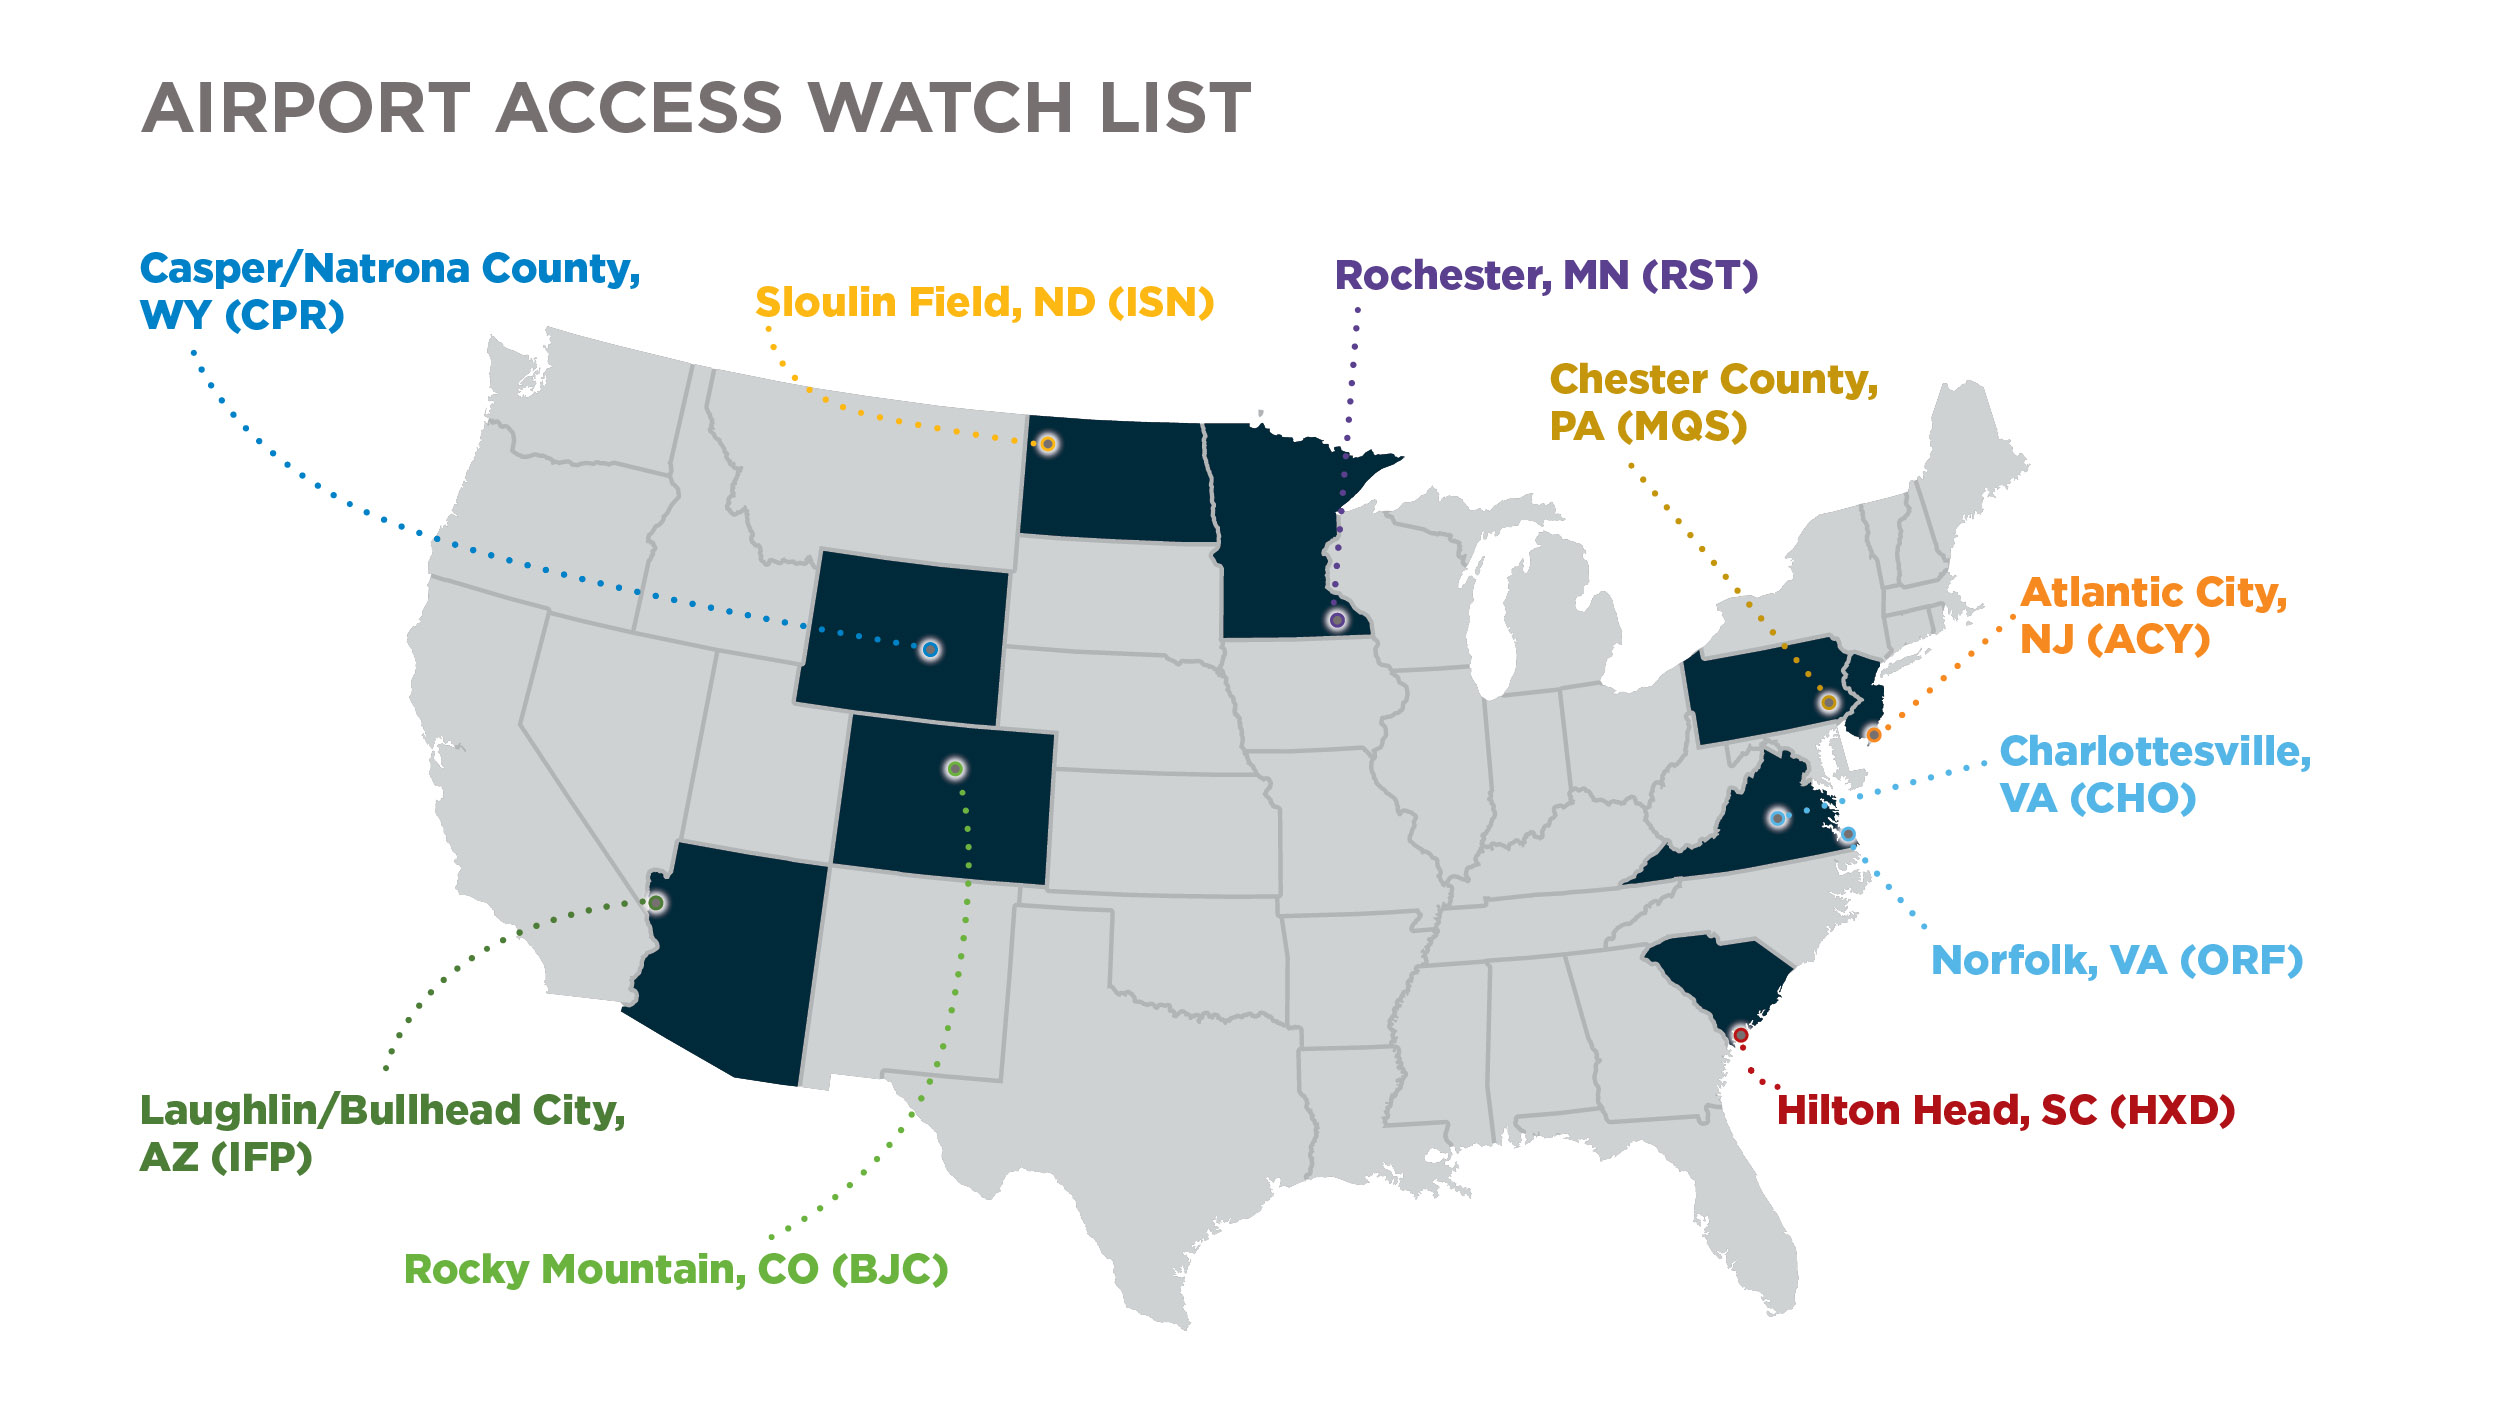 AOPA's Airport Access Watch List